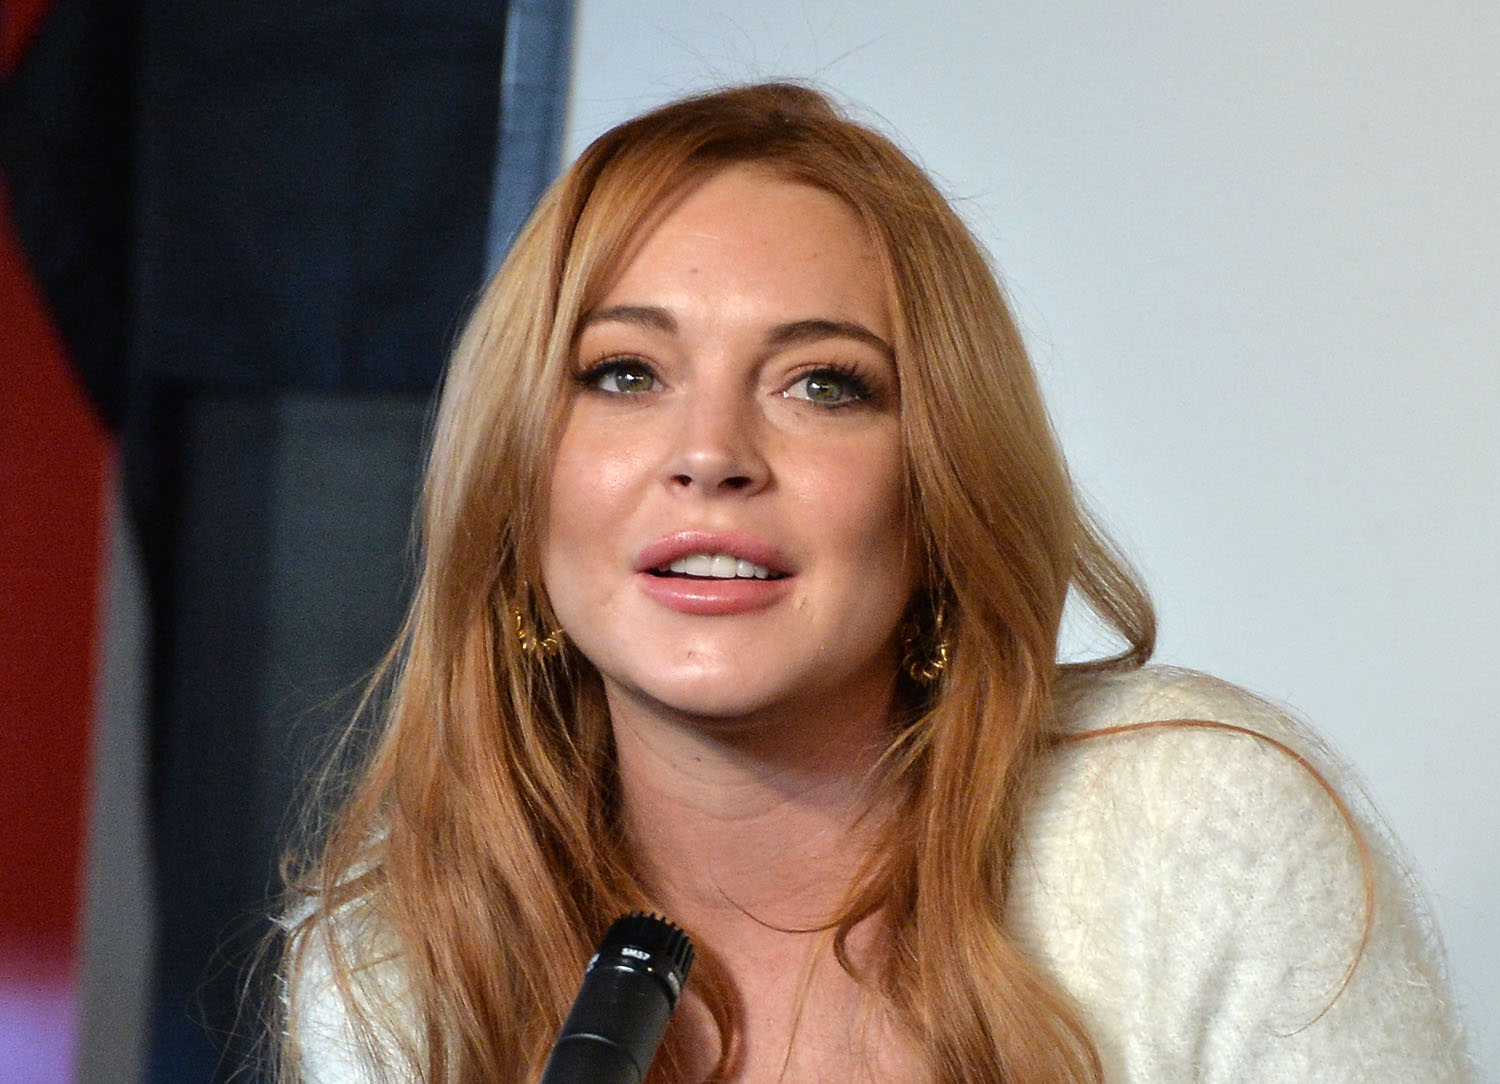 Actress Lindsay Lohan speaks at a press conference on Jan. 20, 2014 in Park City, Utah.